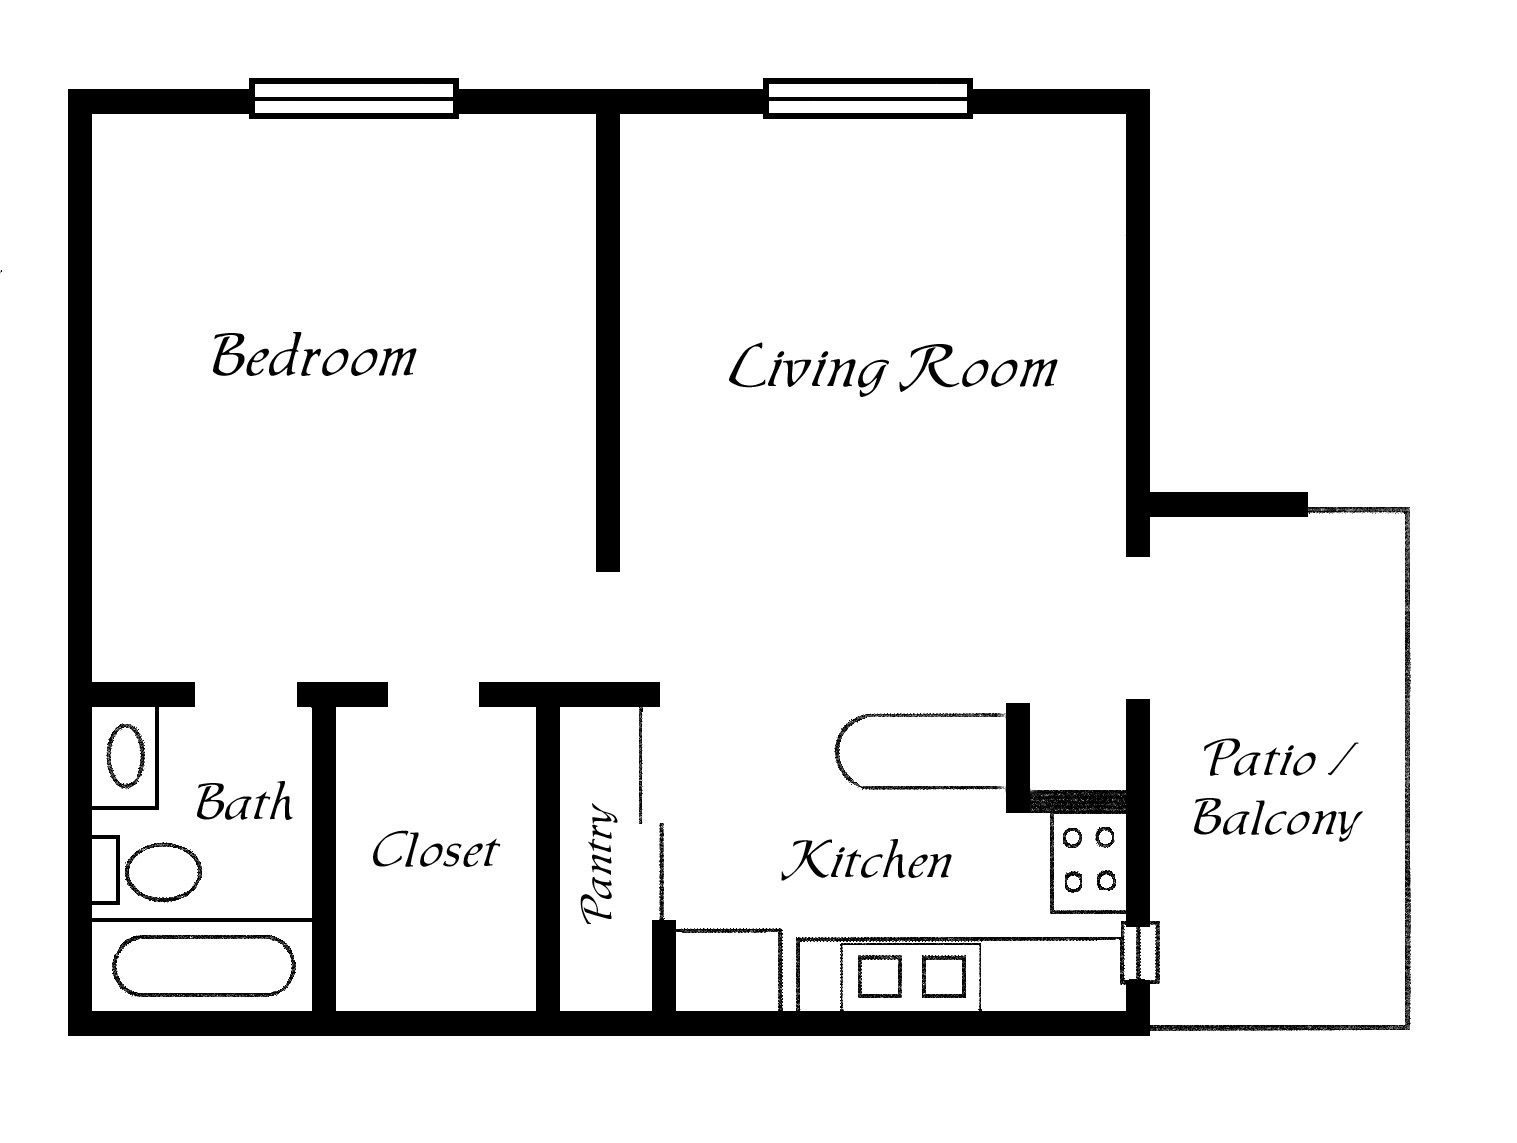 Basic Floor Plans For Homes Simple Floor Plans Mobile Home Floor Plans One Bedroom House Plans